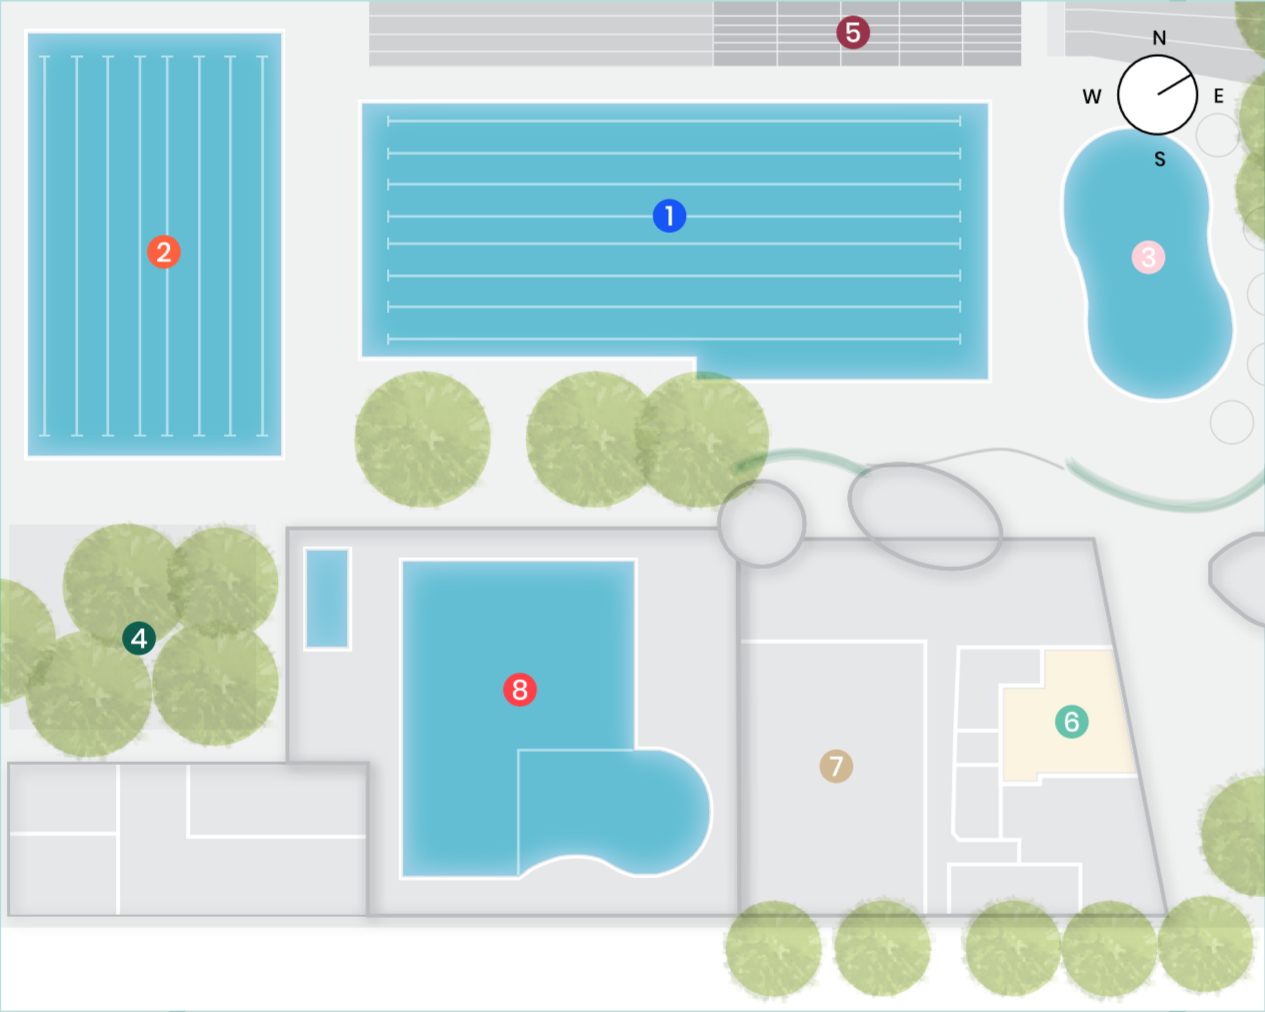 A site map of the Ashfield Aquatic Centre from above